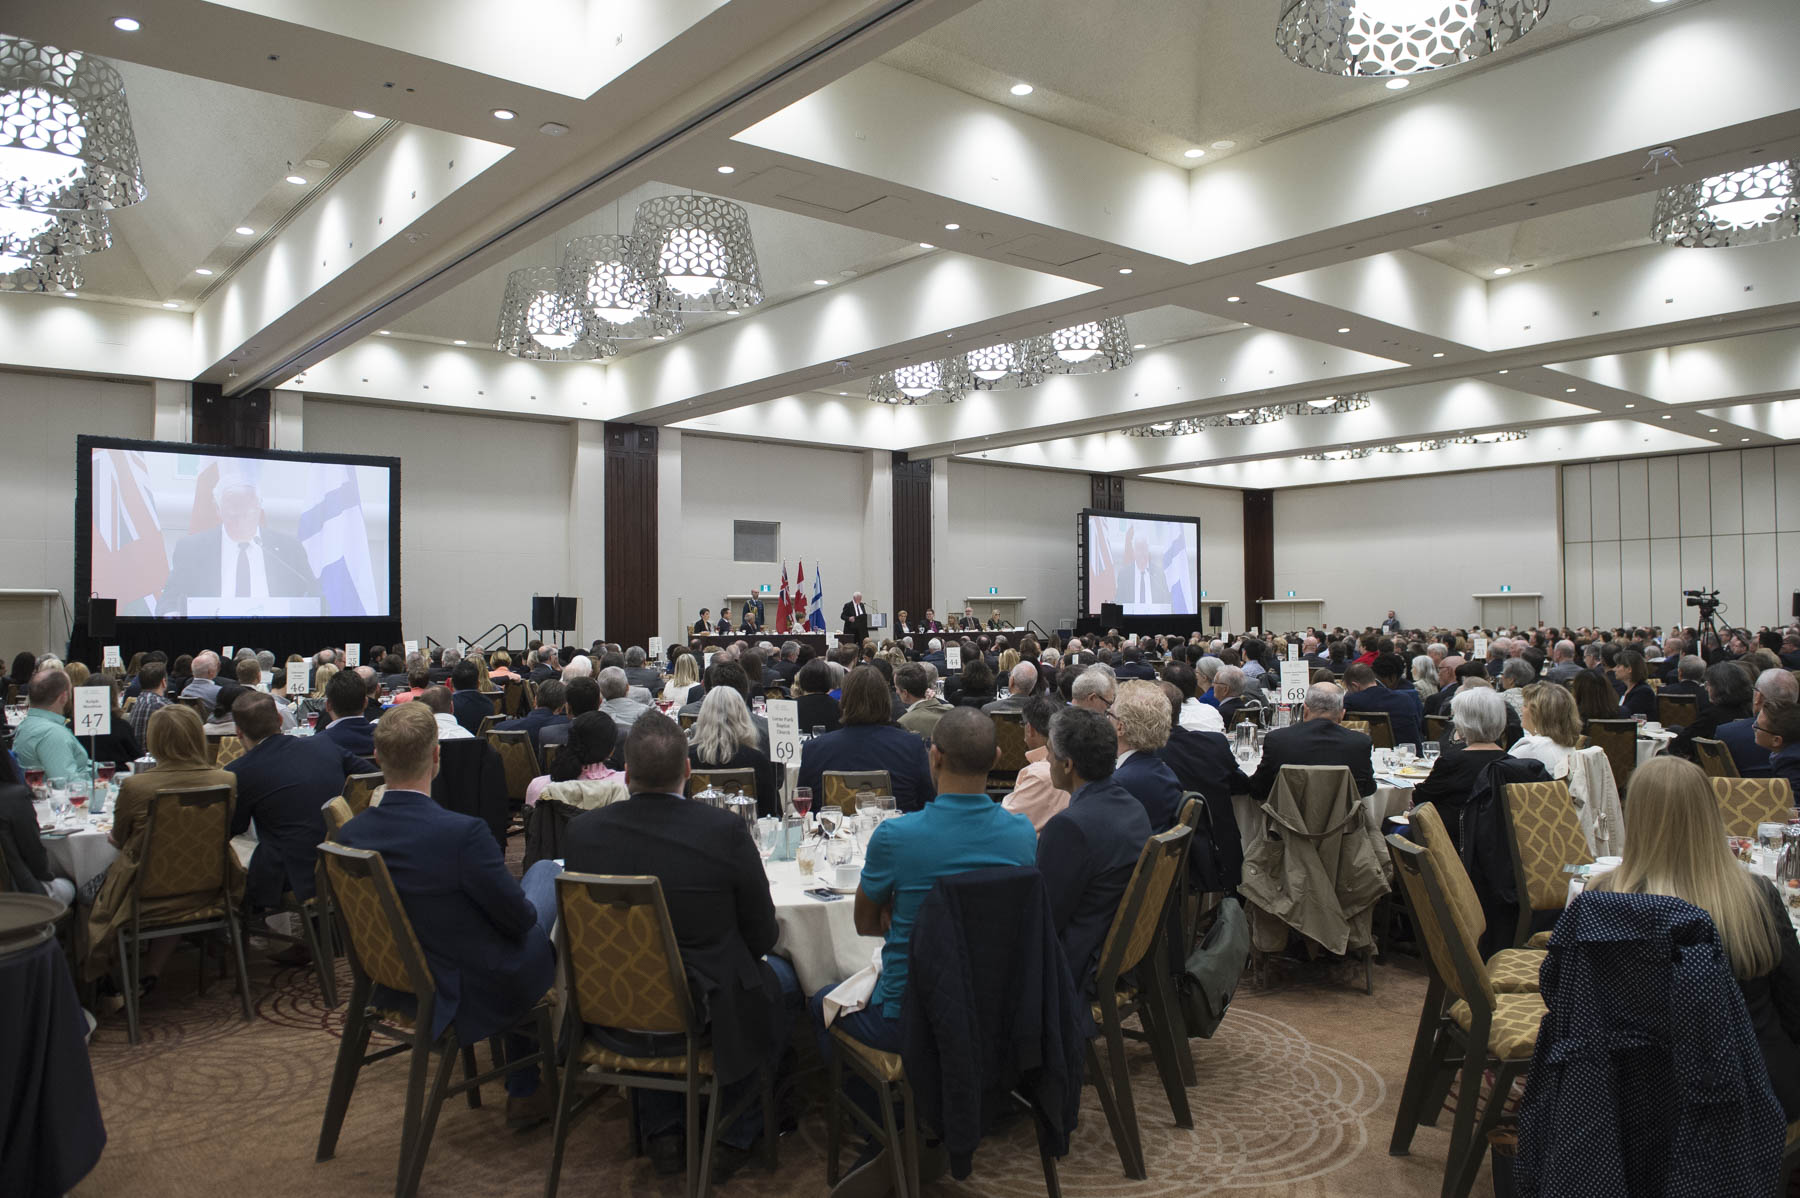 The Ontario Prayer Breakfast is an annual opportunity for the Christian community to gather together to support members of the provincial parliament and city councillors in prayer.